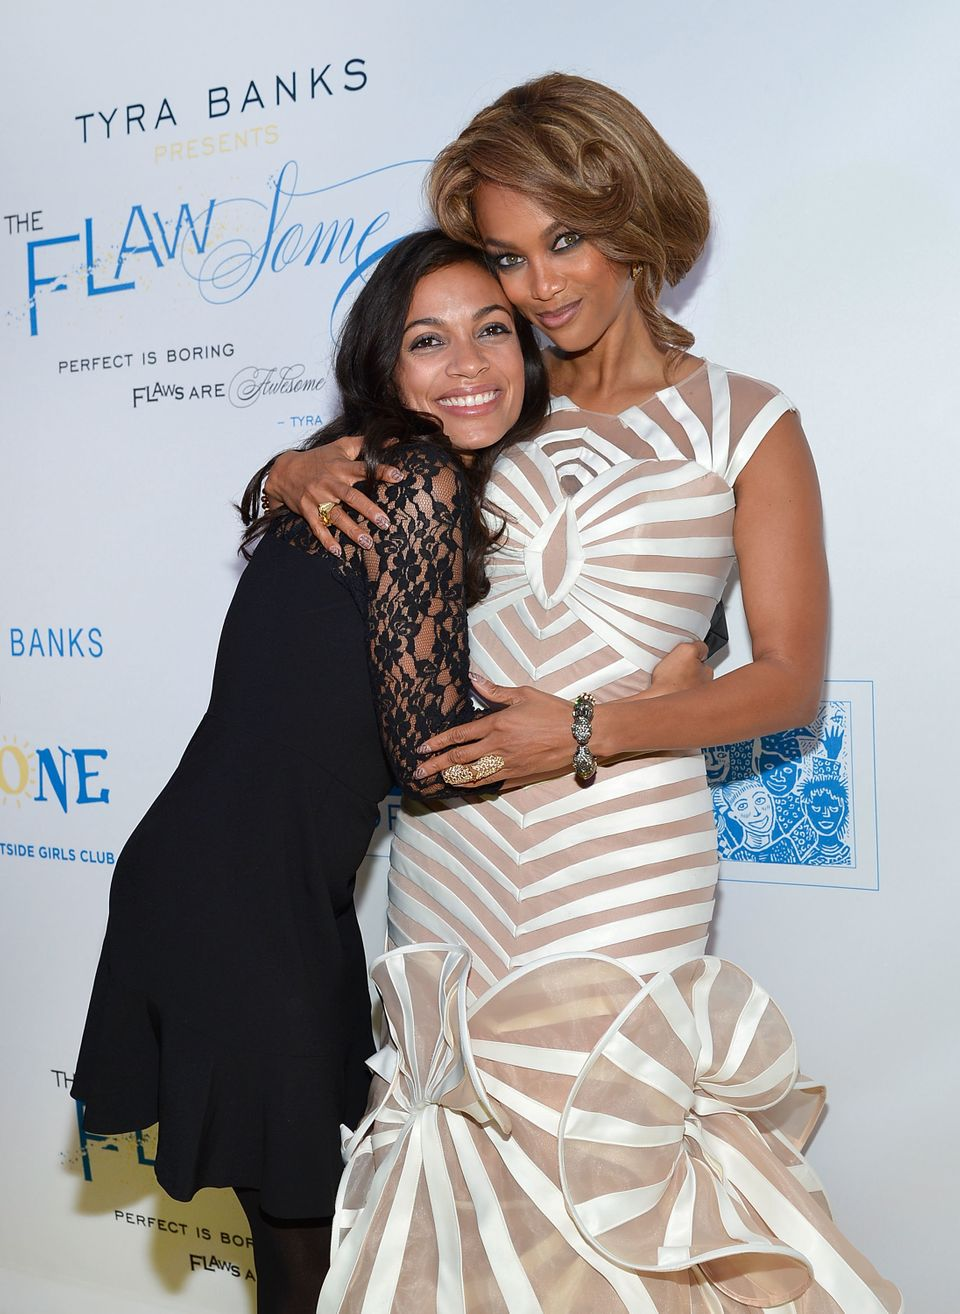 NEW YORK, NY - OCTOBER 18:  Actress Rosario Dawson (L) and model/media personality Tyra Banks attend The Flawsome Ball For Th